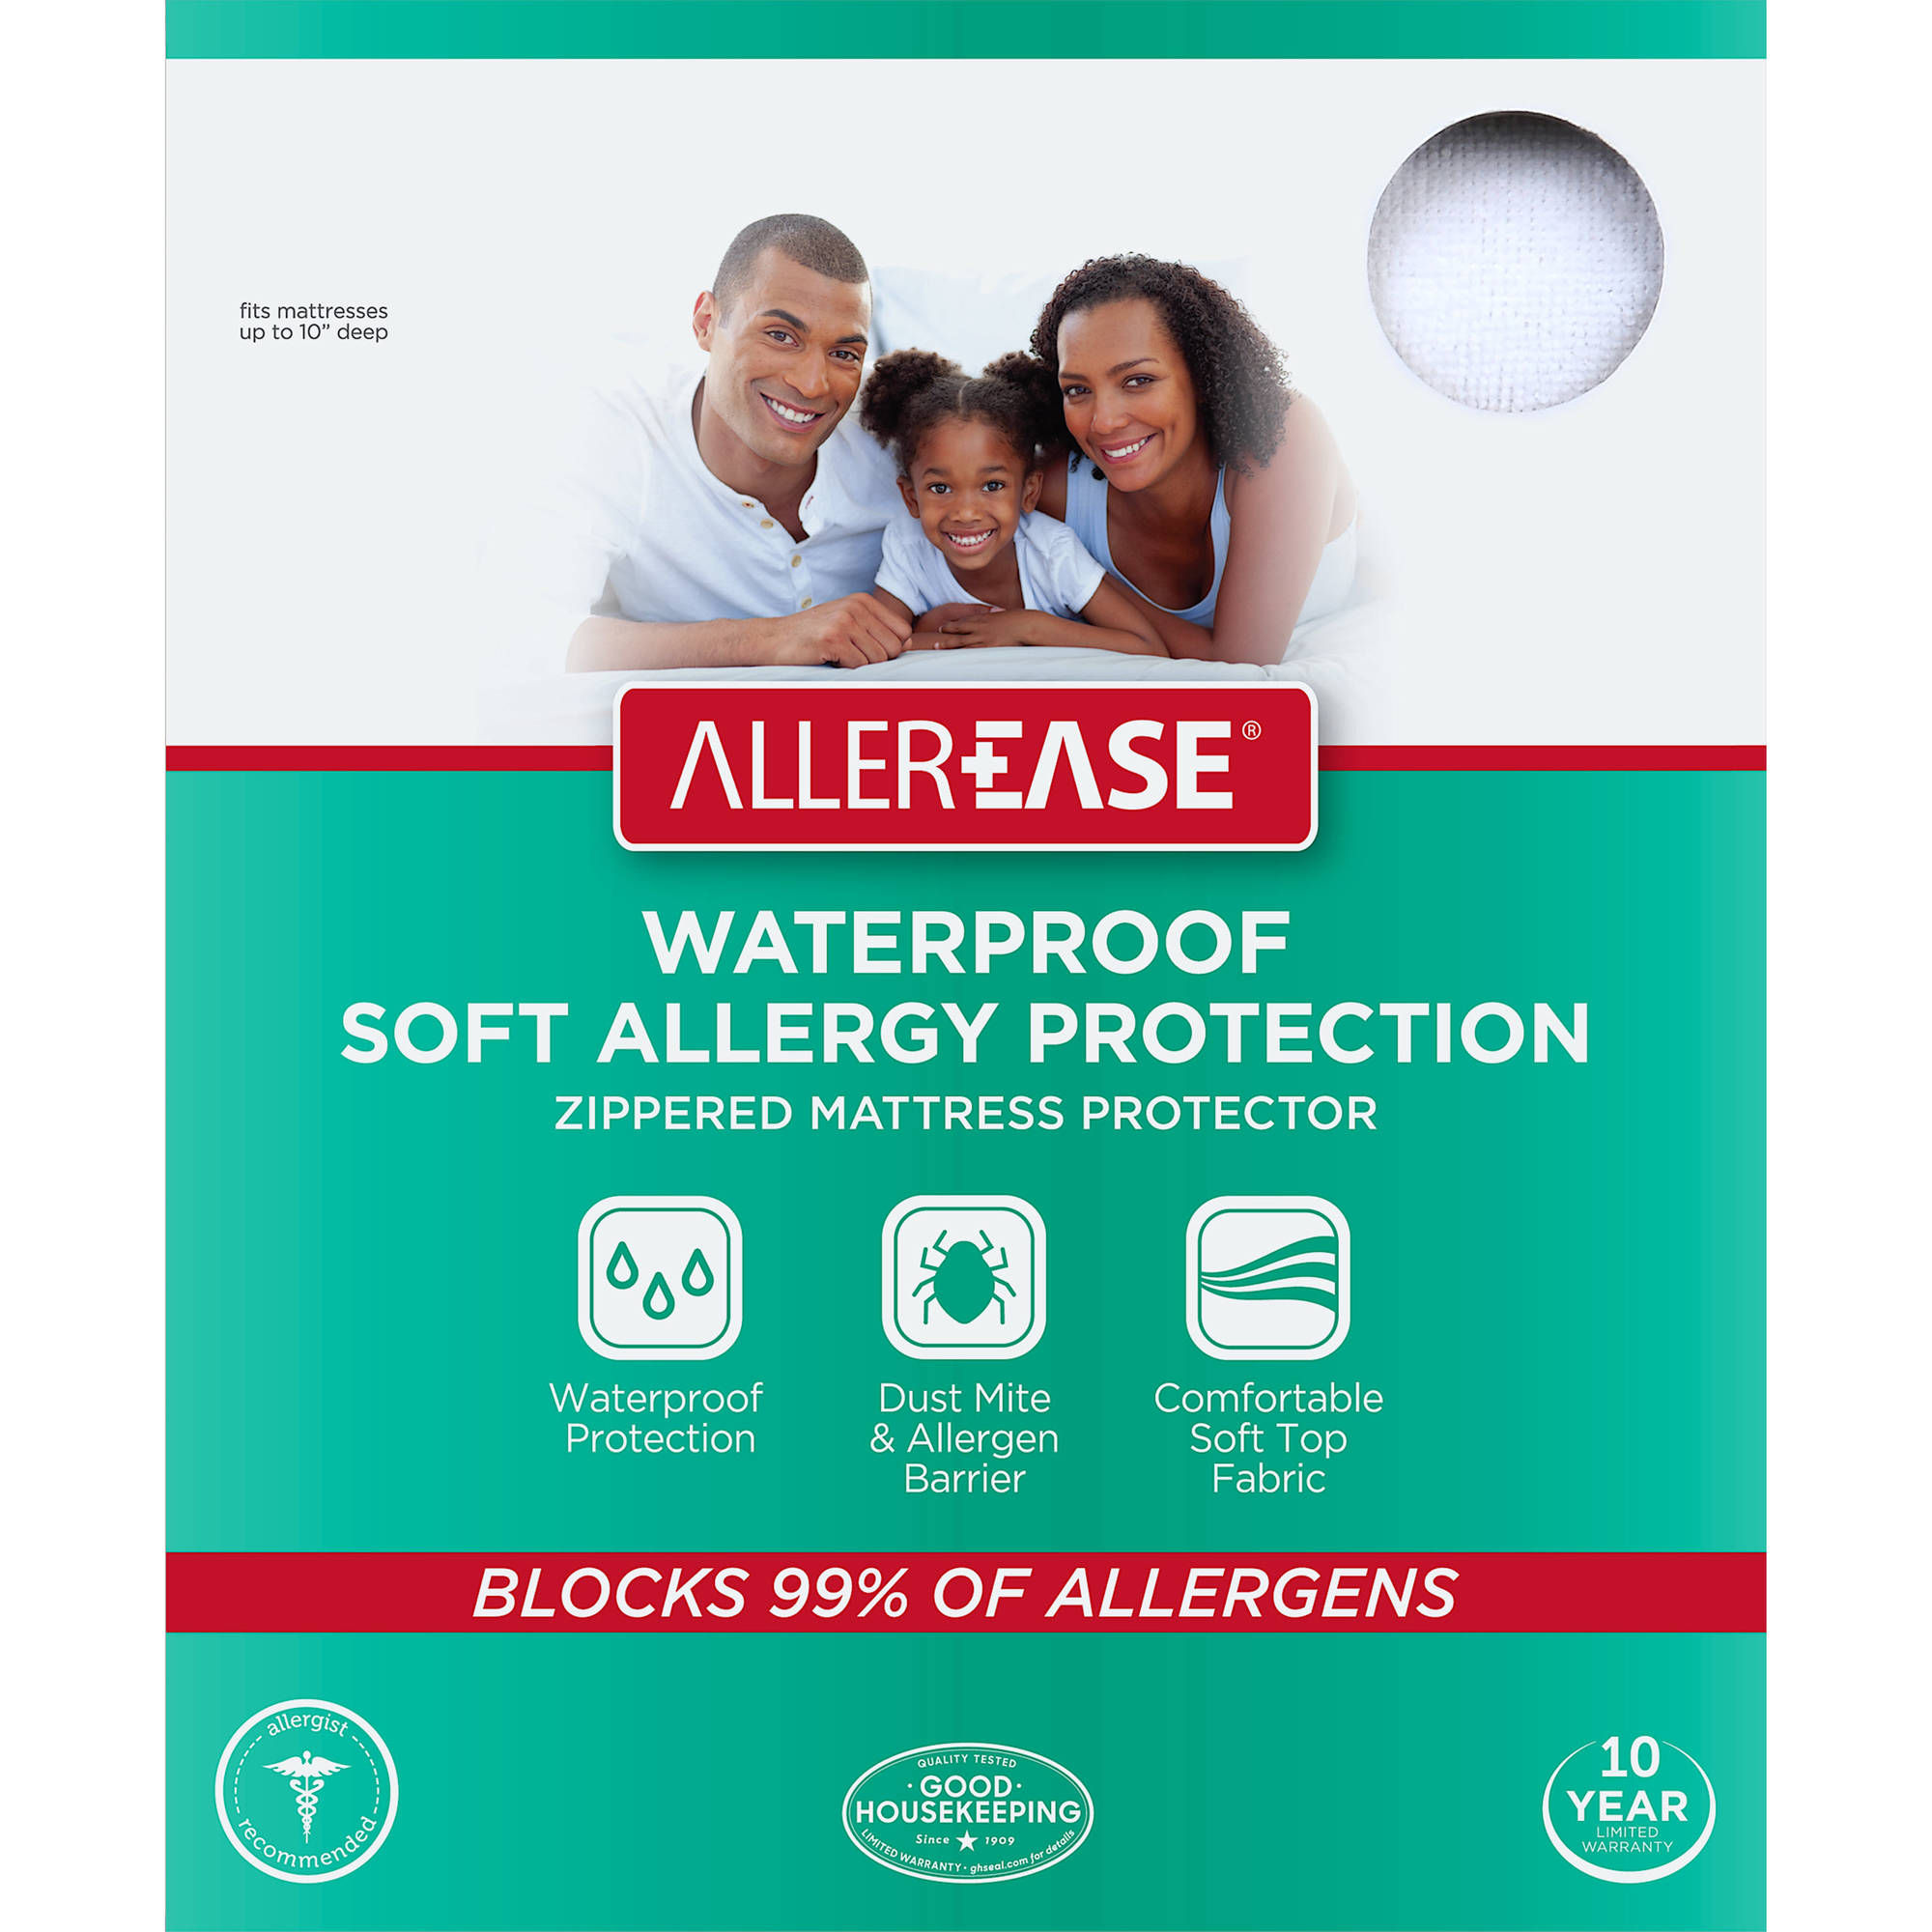 AllerEase Soft Terry Allergy Protection Waterproof Zippered Mattress  Protector, Queen